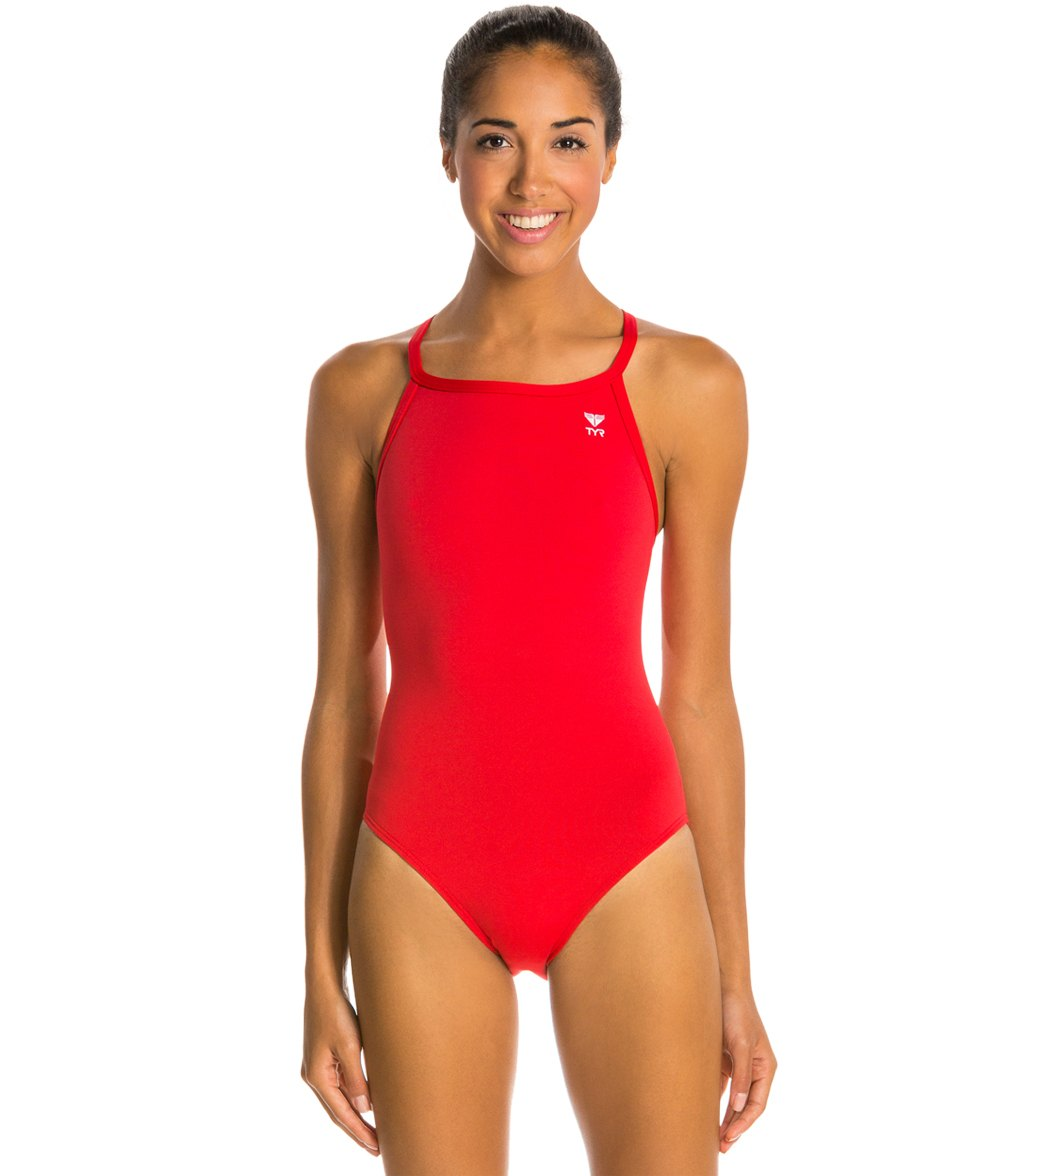 62081bc05ca72 TYR Durafast Elite Solid Diamondfit One Piece Swimsuit at SwimOutlet.com -  Free Shipping